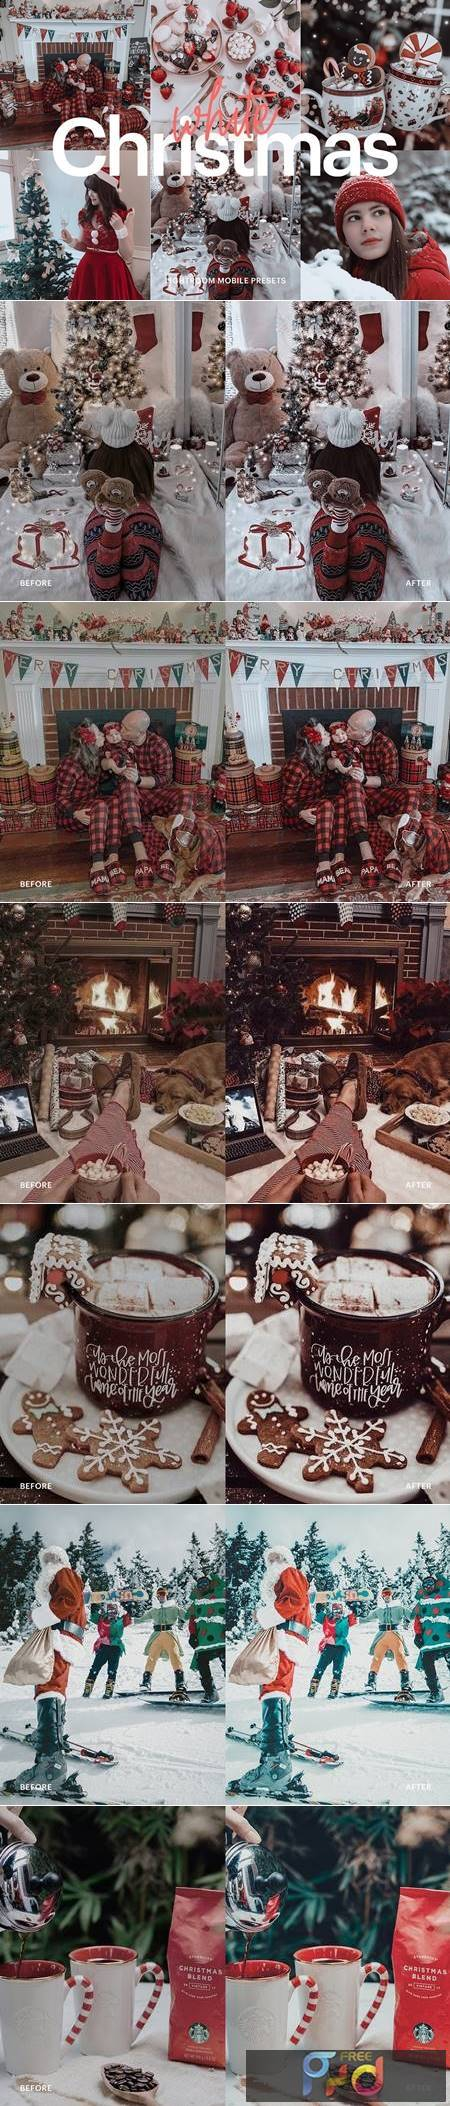 Lightroom Preset - White Christmas 4976207 1